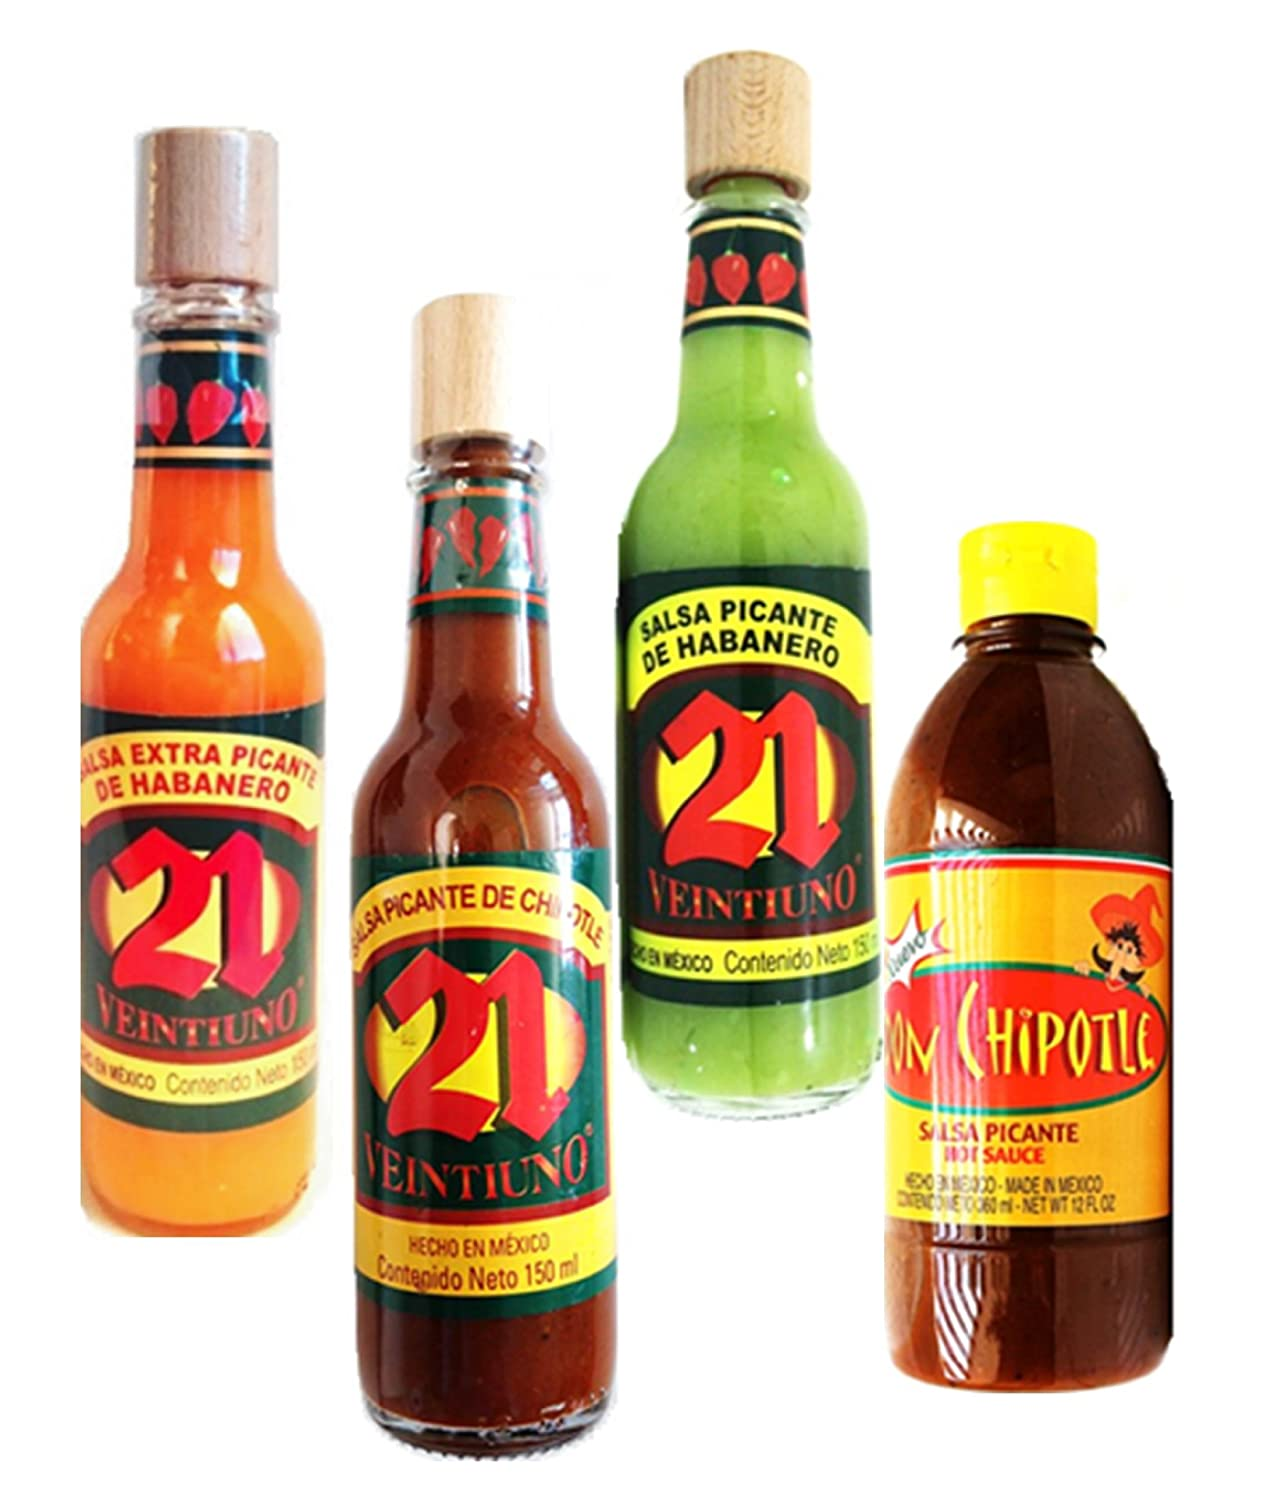 Amazon.com : Premium Salsas Picantes Mexicanas. Salsa 21 & Don Chipotle - Mexican Hot Sauce Variety Pack (Pack of 4) : Grocery & Gourmet Food